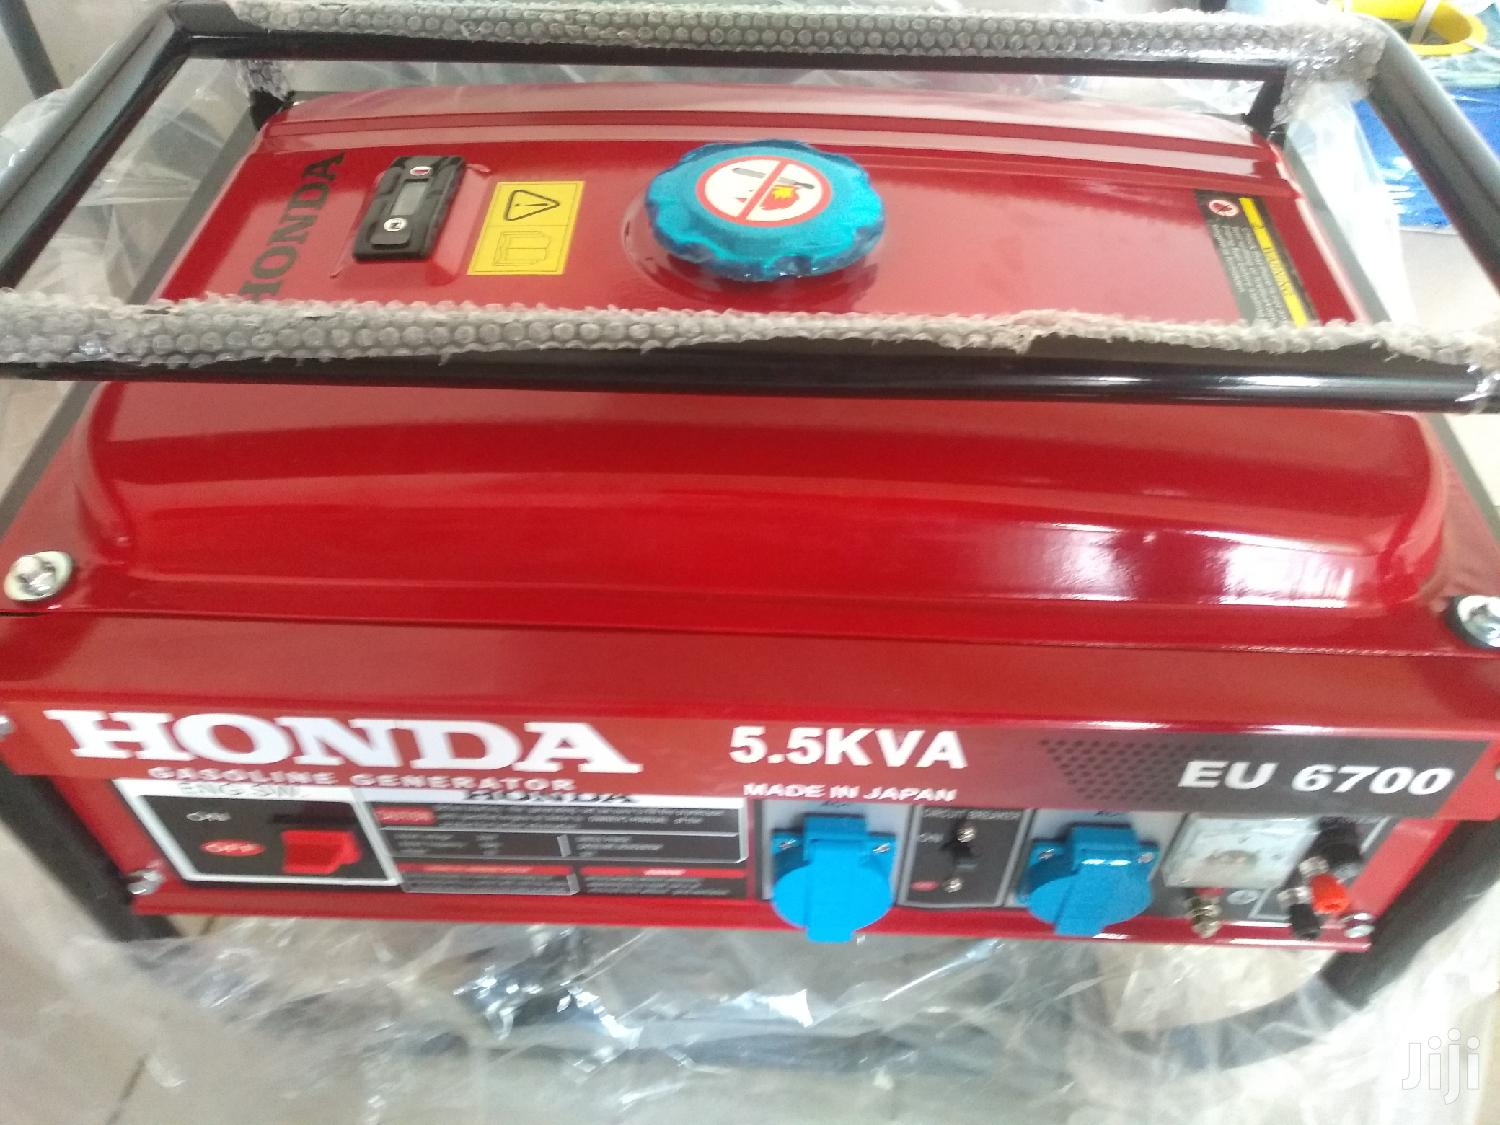 Latest# Honda 5.5kva Japan at Quality Generators | Electrical Equipment for sale in Accra Metropolitan, Greater Accra, Ghana